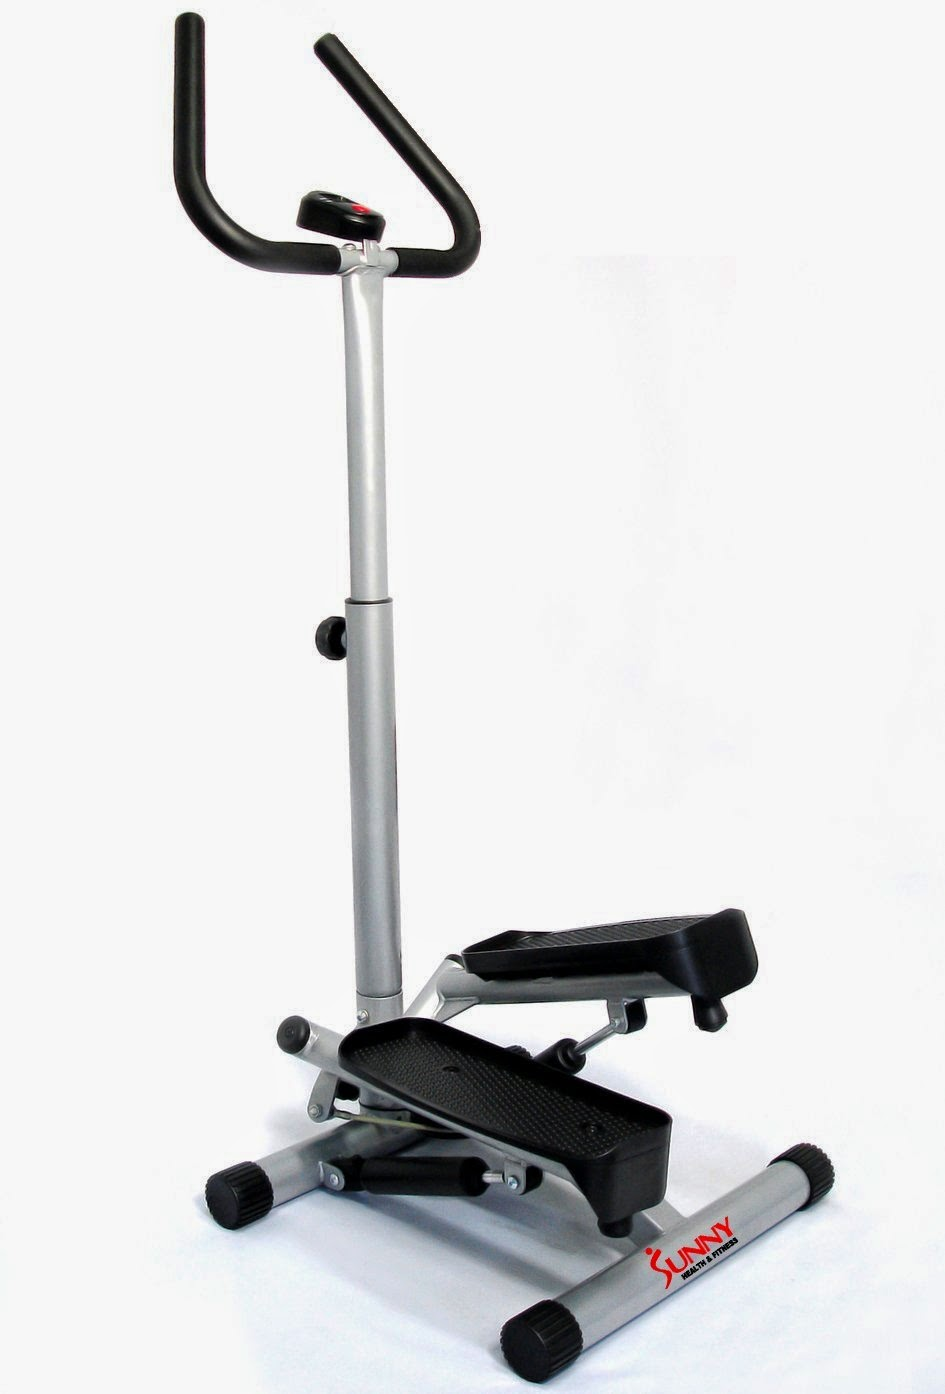 Sunny Twister Stepper with Handle Bar, picture, review features & specifications, plus compare with Sunny Health & Fitness Twister Stepper with Resistance Bands